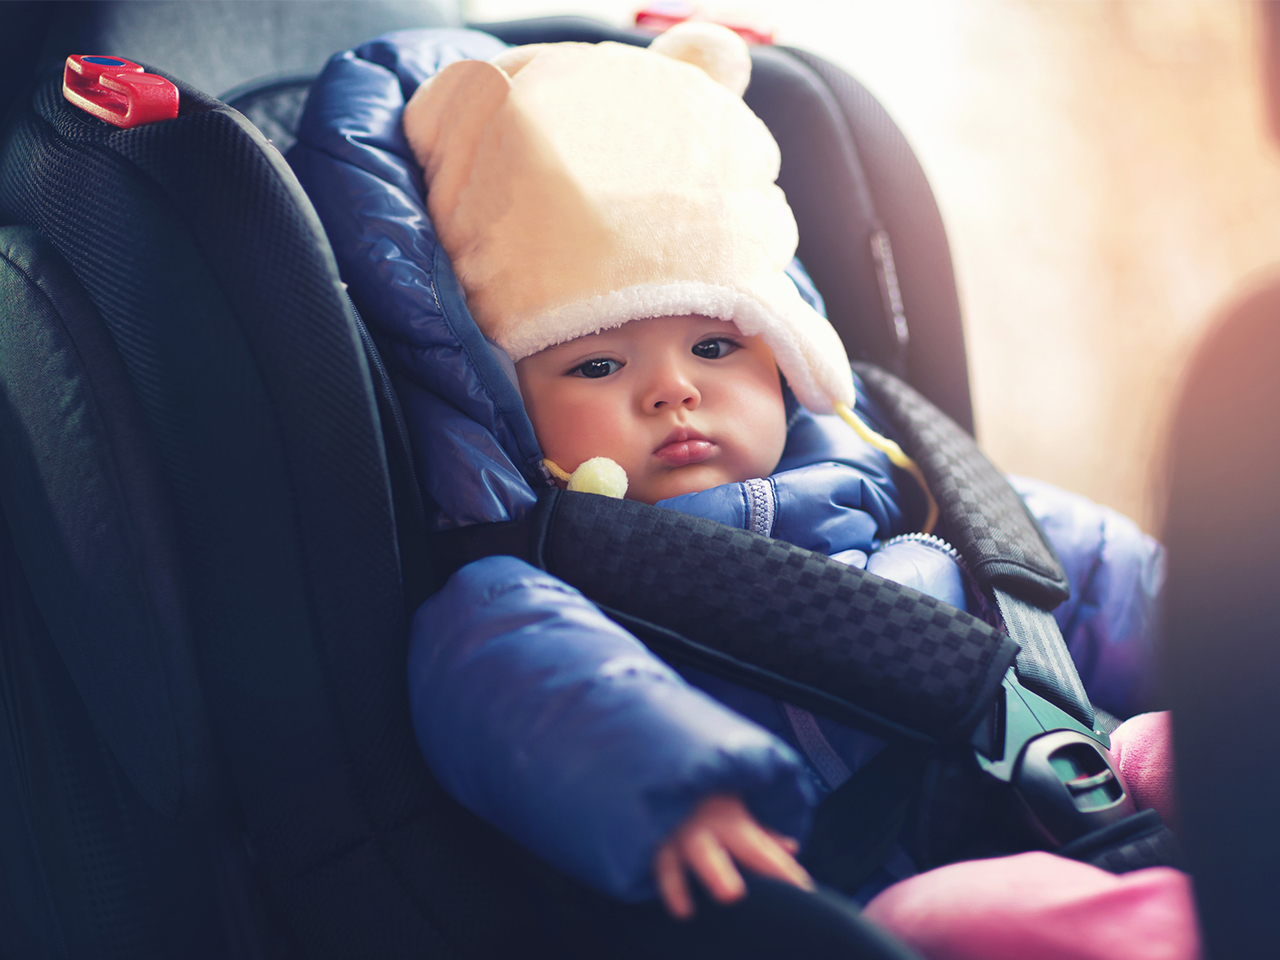 Baby sitting in a carseat with coat on